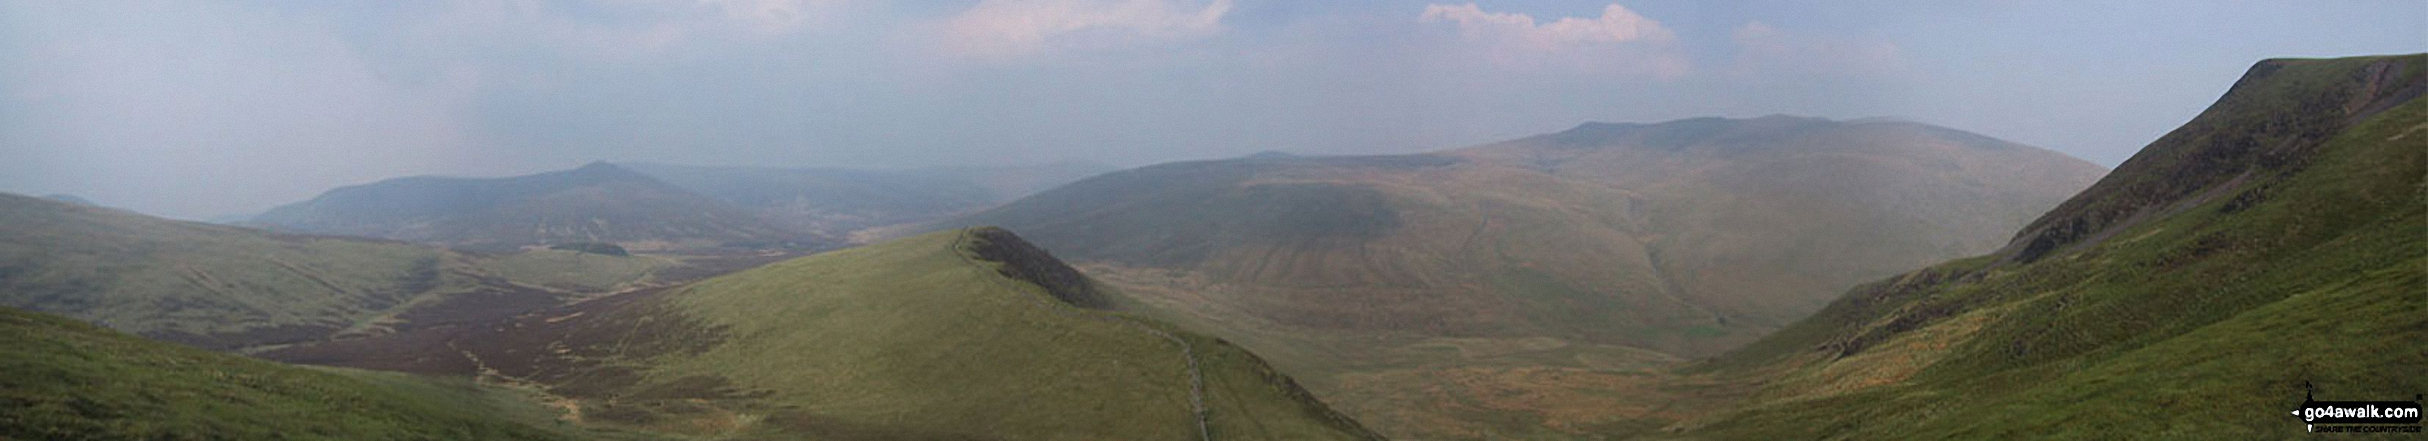 Great Calva, Burnt Horse, Blencathra (Saddleback) and Lonscale Crags from (North of) Lonscale Fell